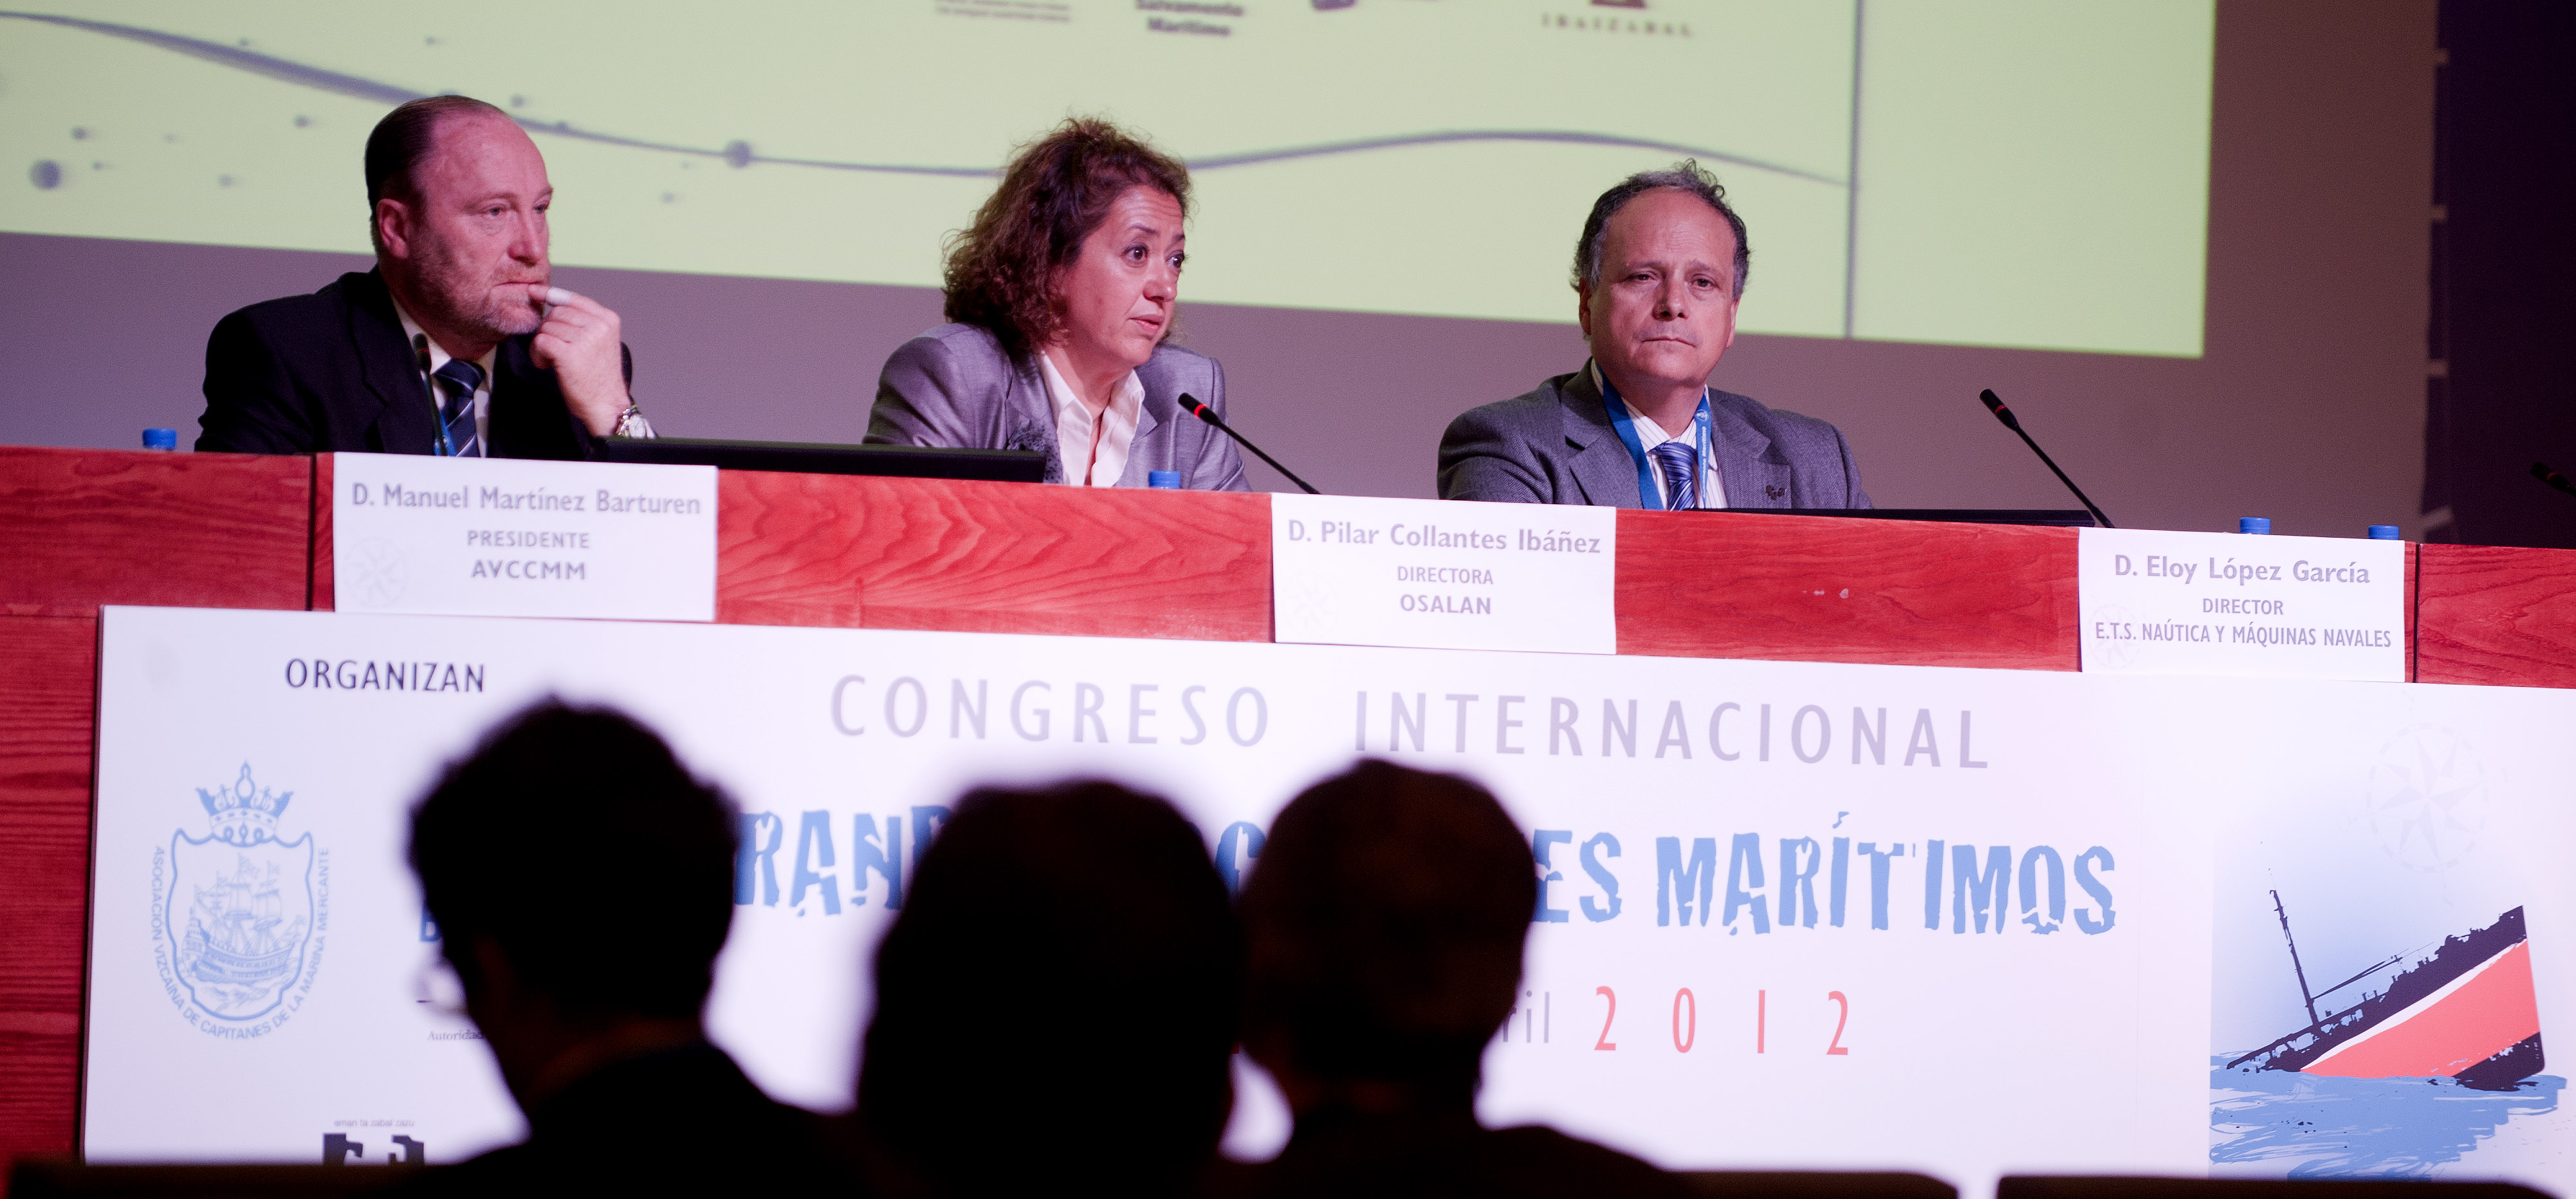 2012_04_25_osalan_congreso_accidentes_maritimos_04.jpg